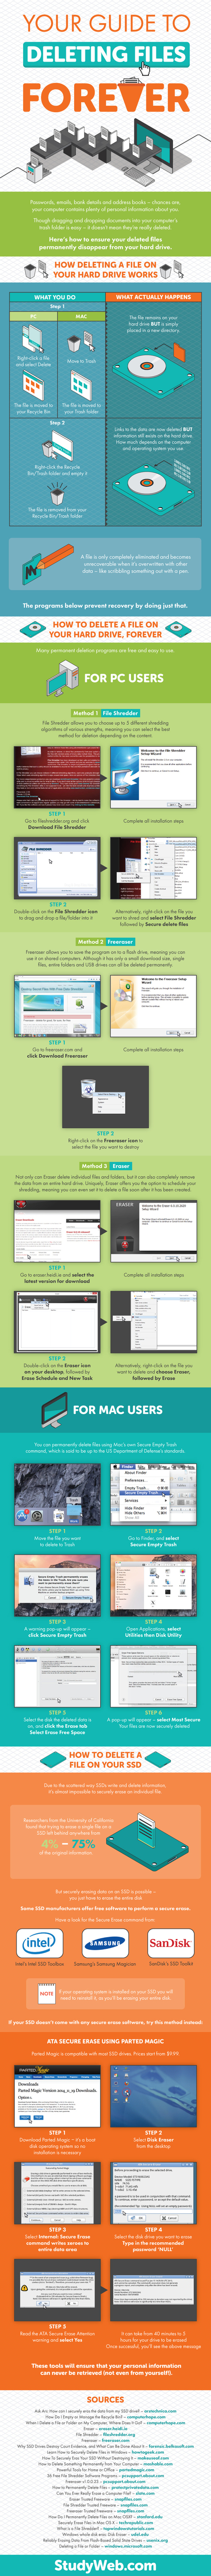 Your Guide to Deleting Files Forever [Infographic] | Websites I Found So You Don't Need To | Scoop.it